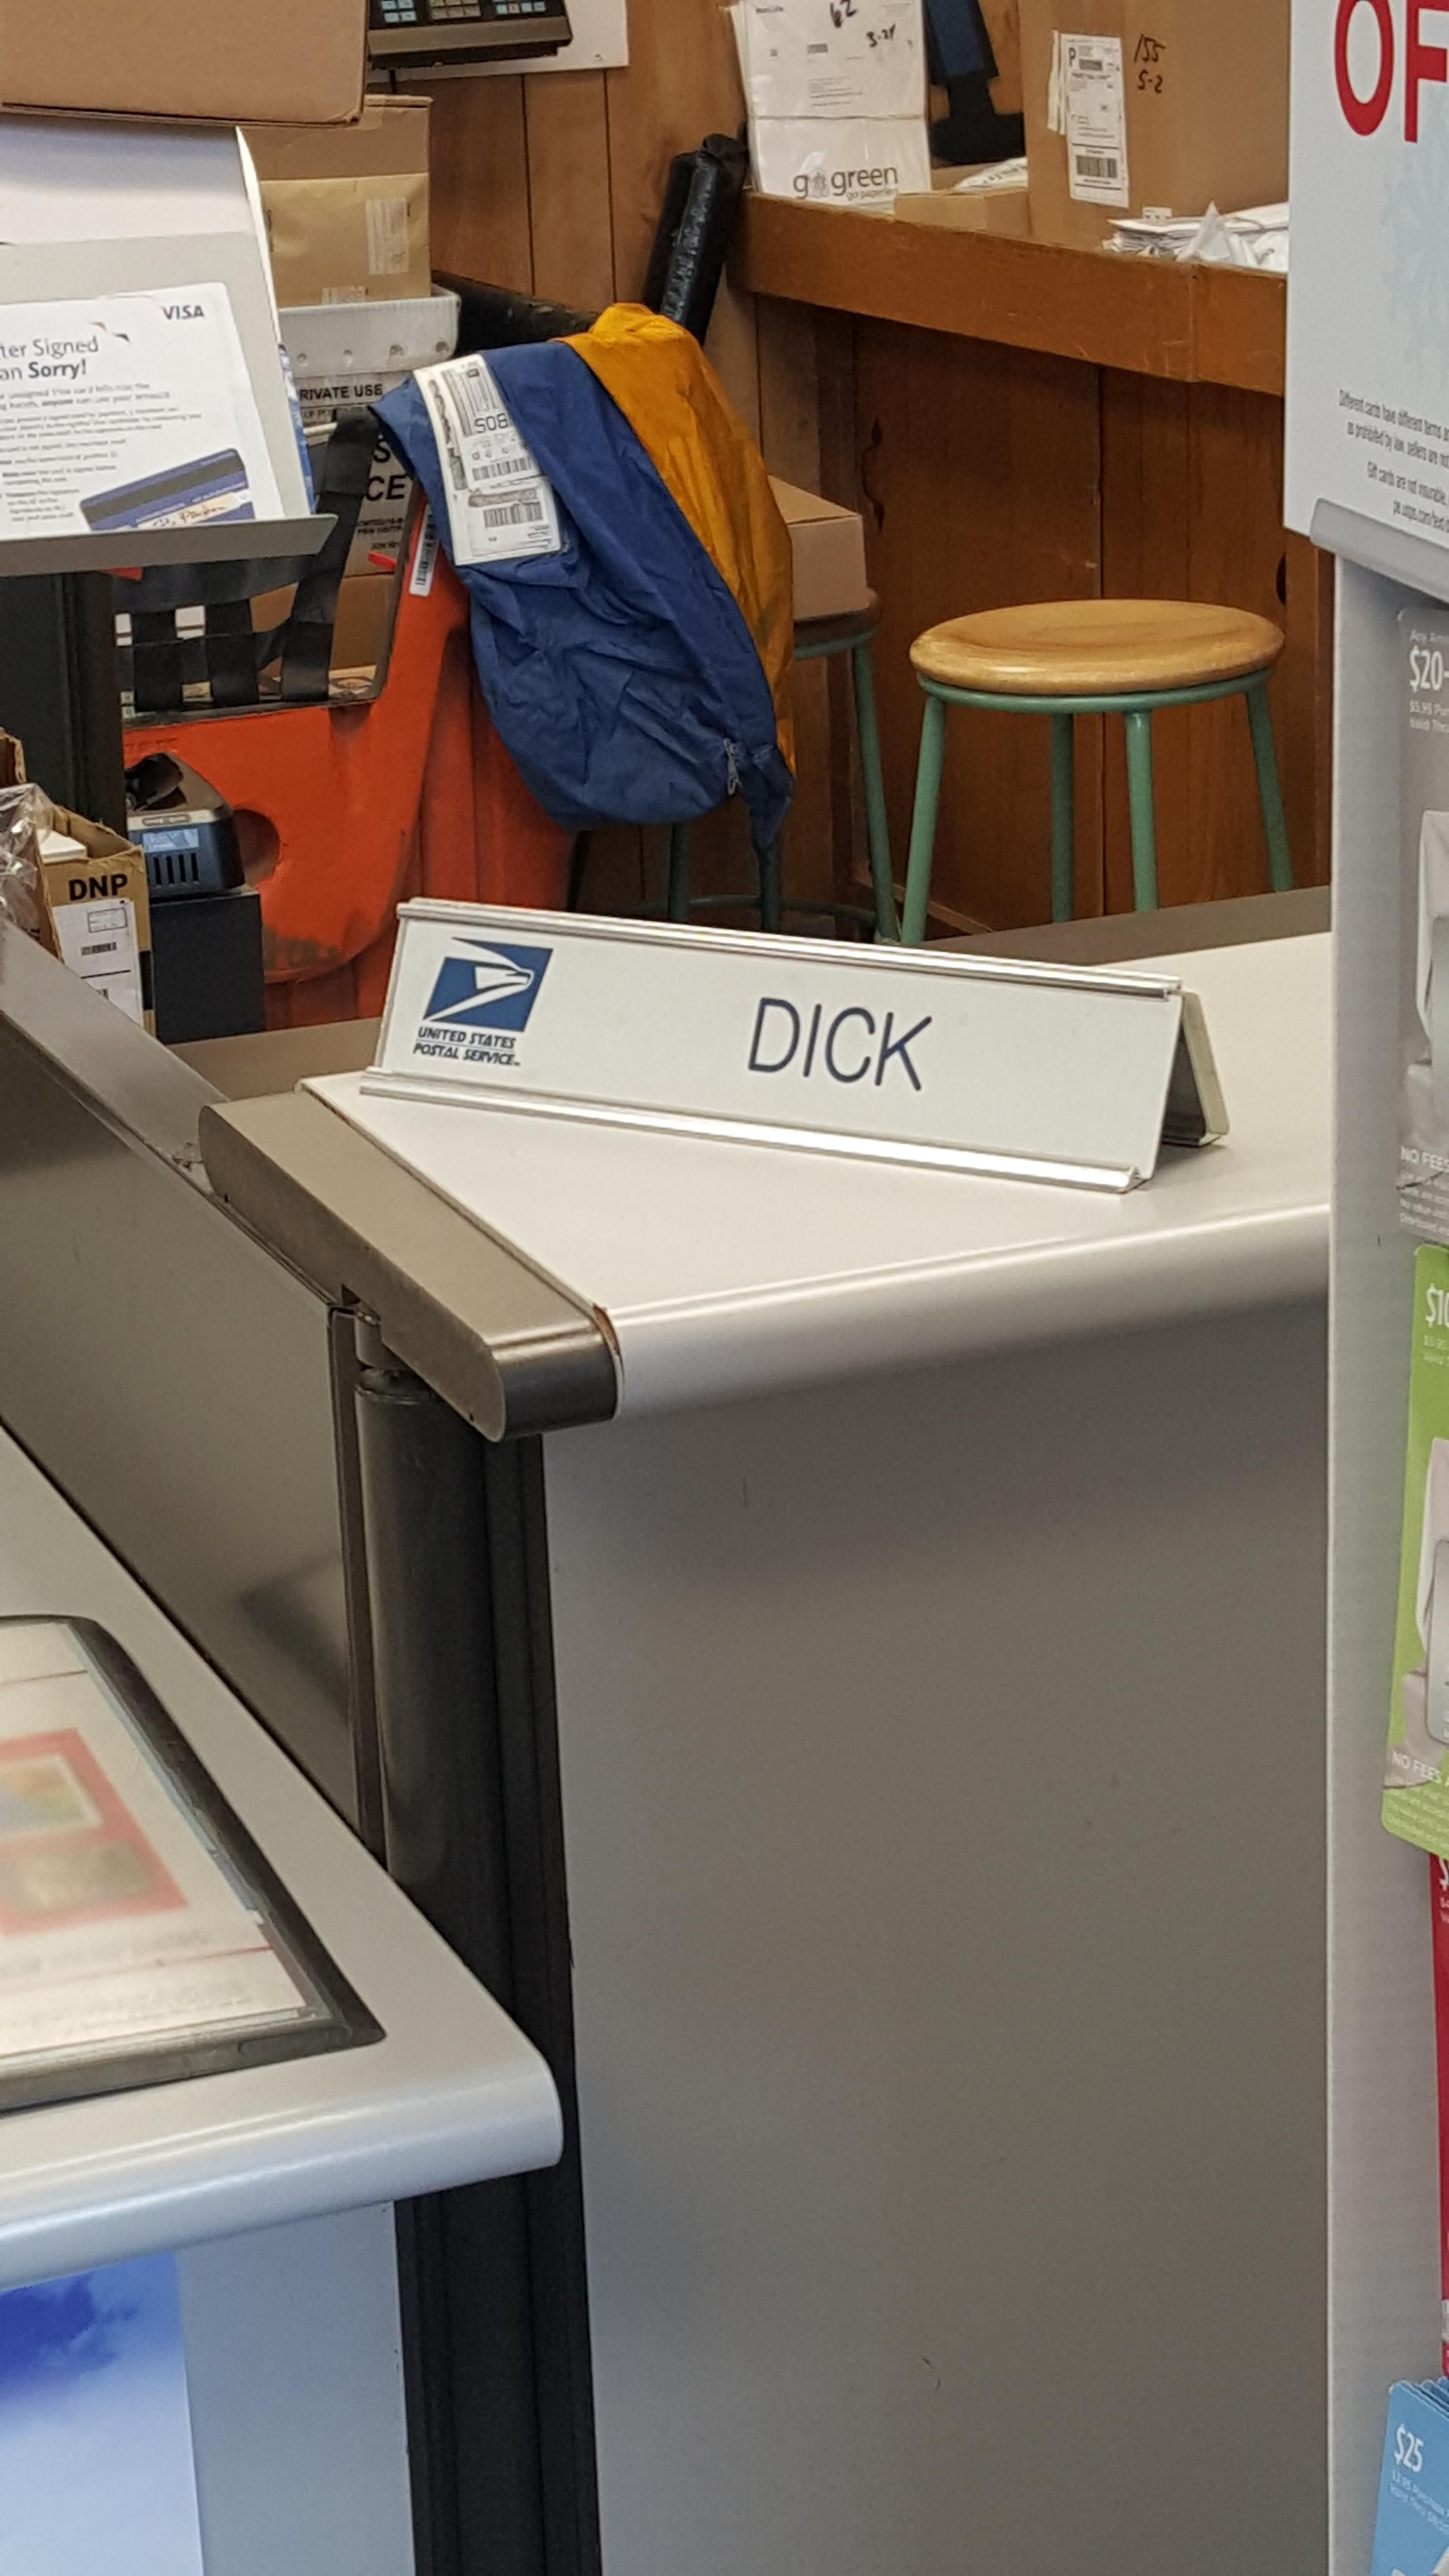 I found Dick at the post office.